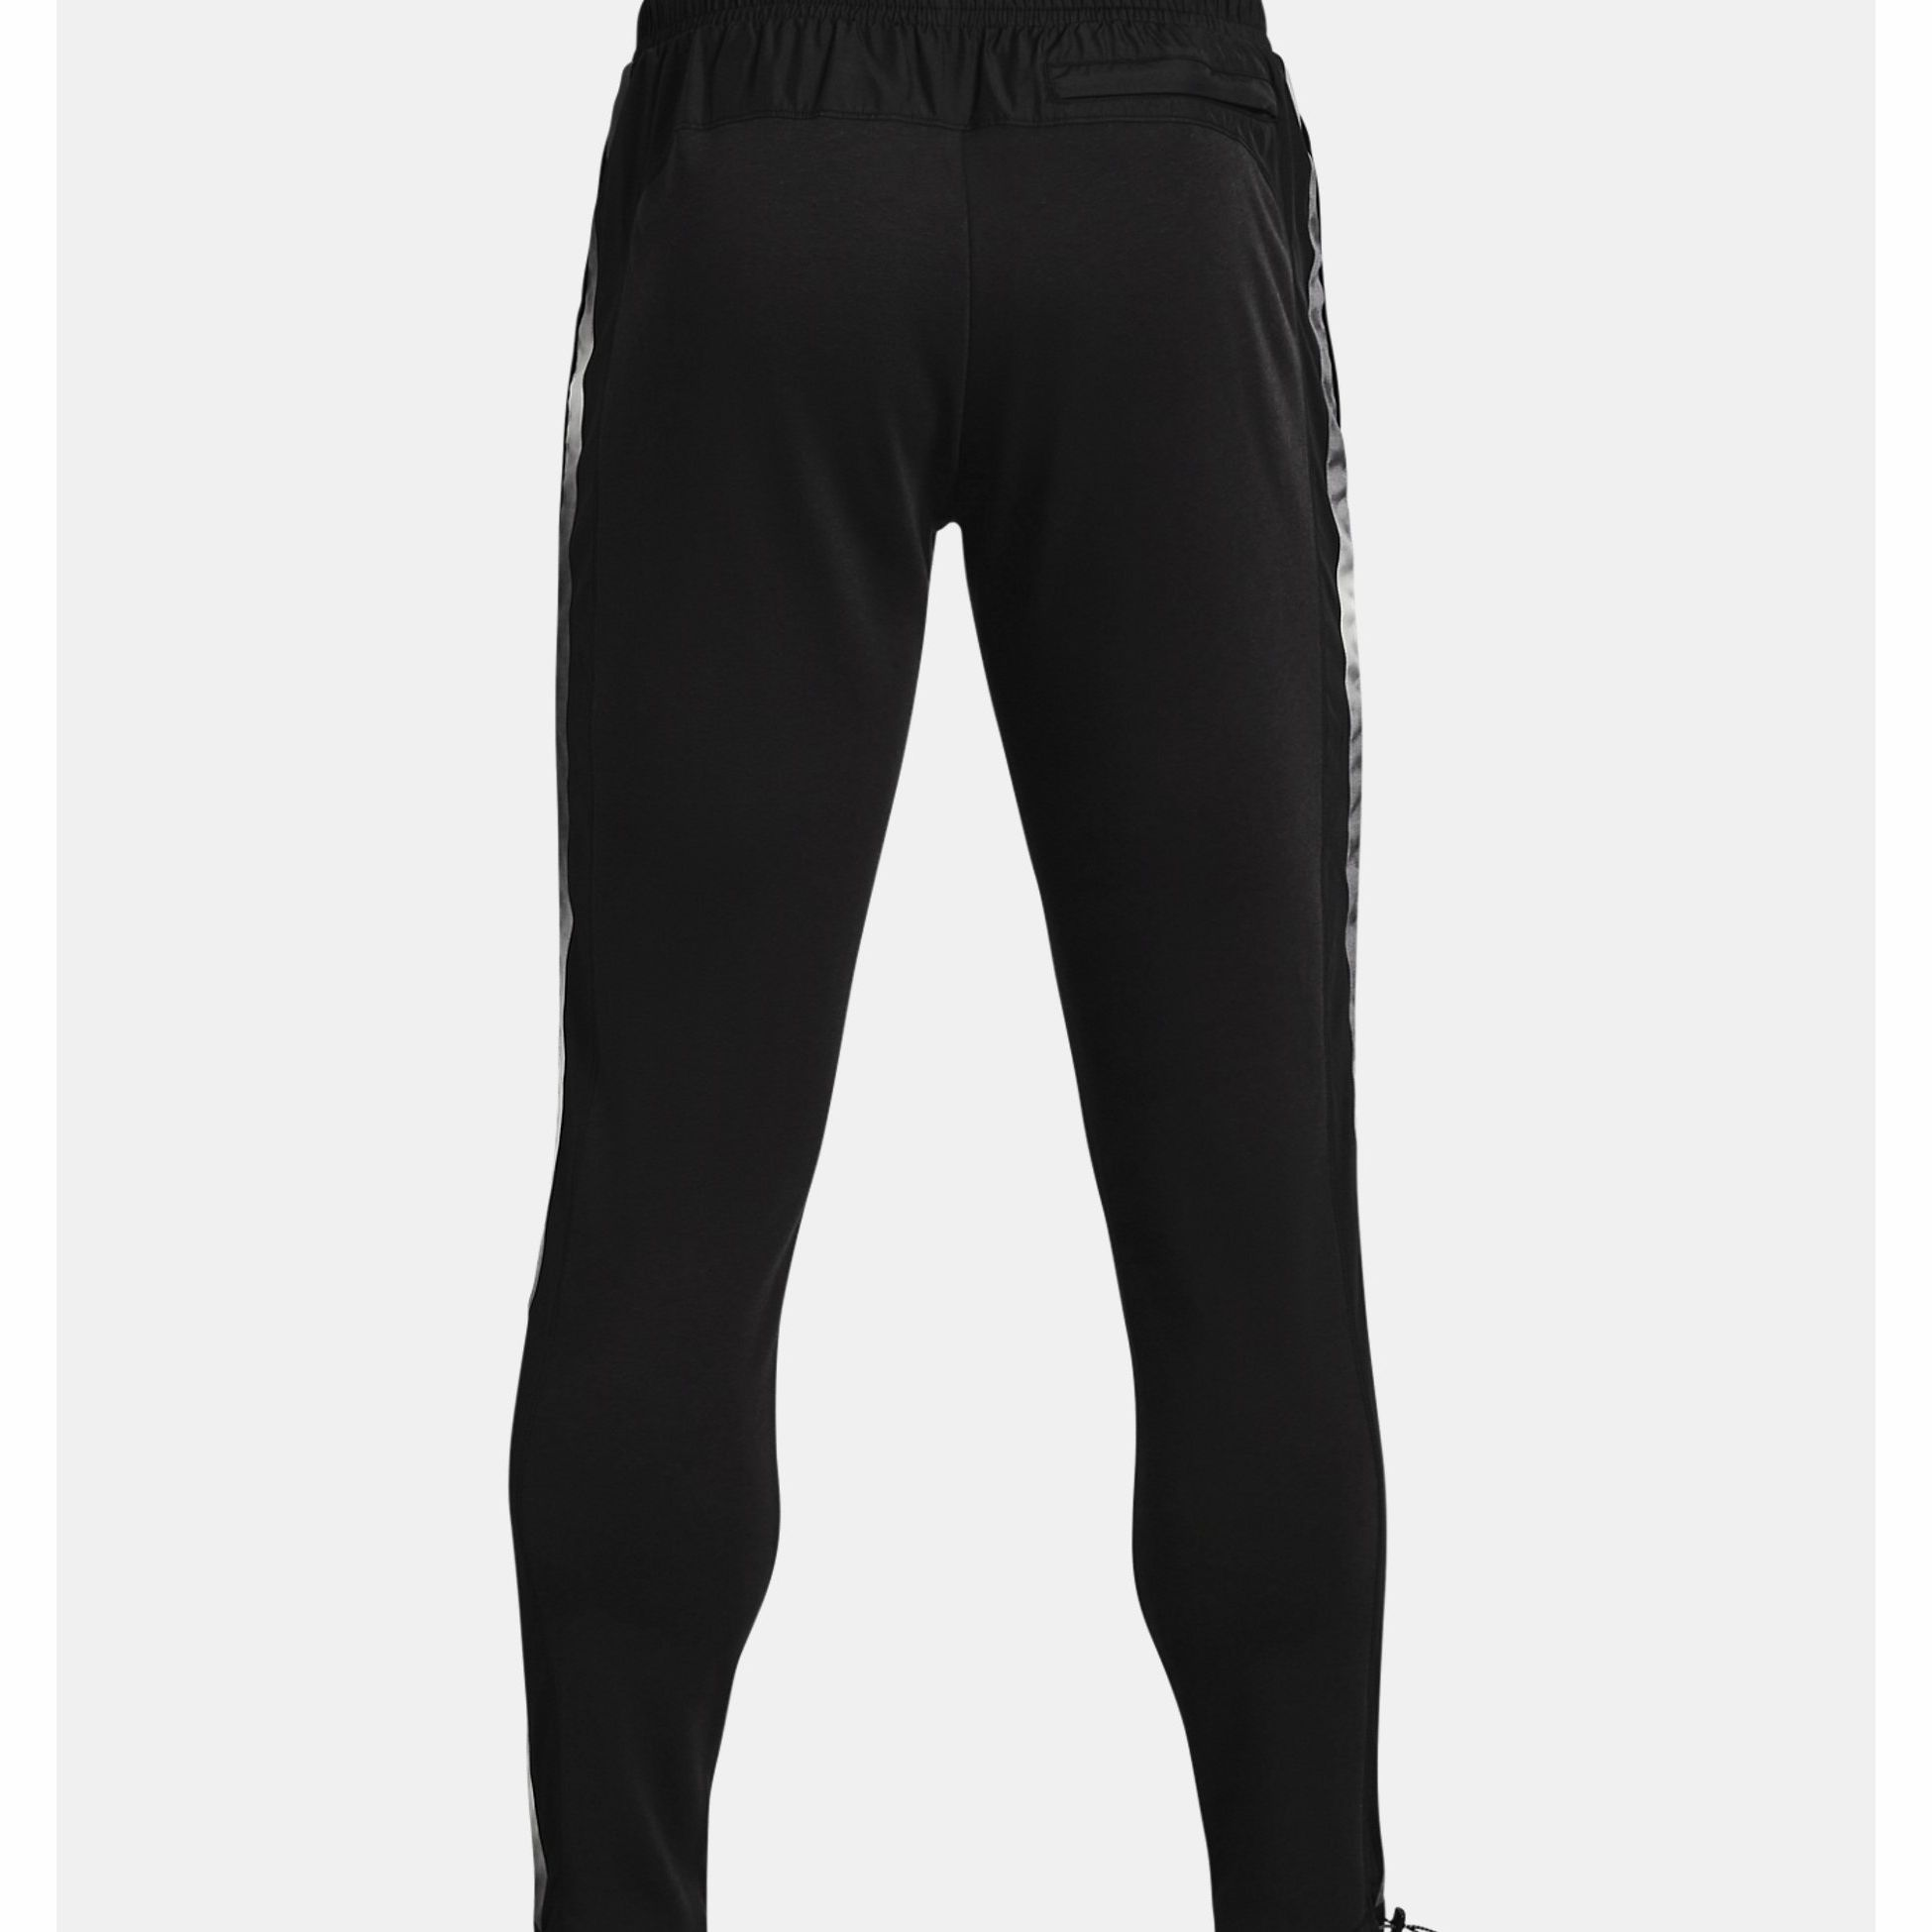 Clothing -  under armour UA Unstoppable Joggers 2027